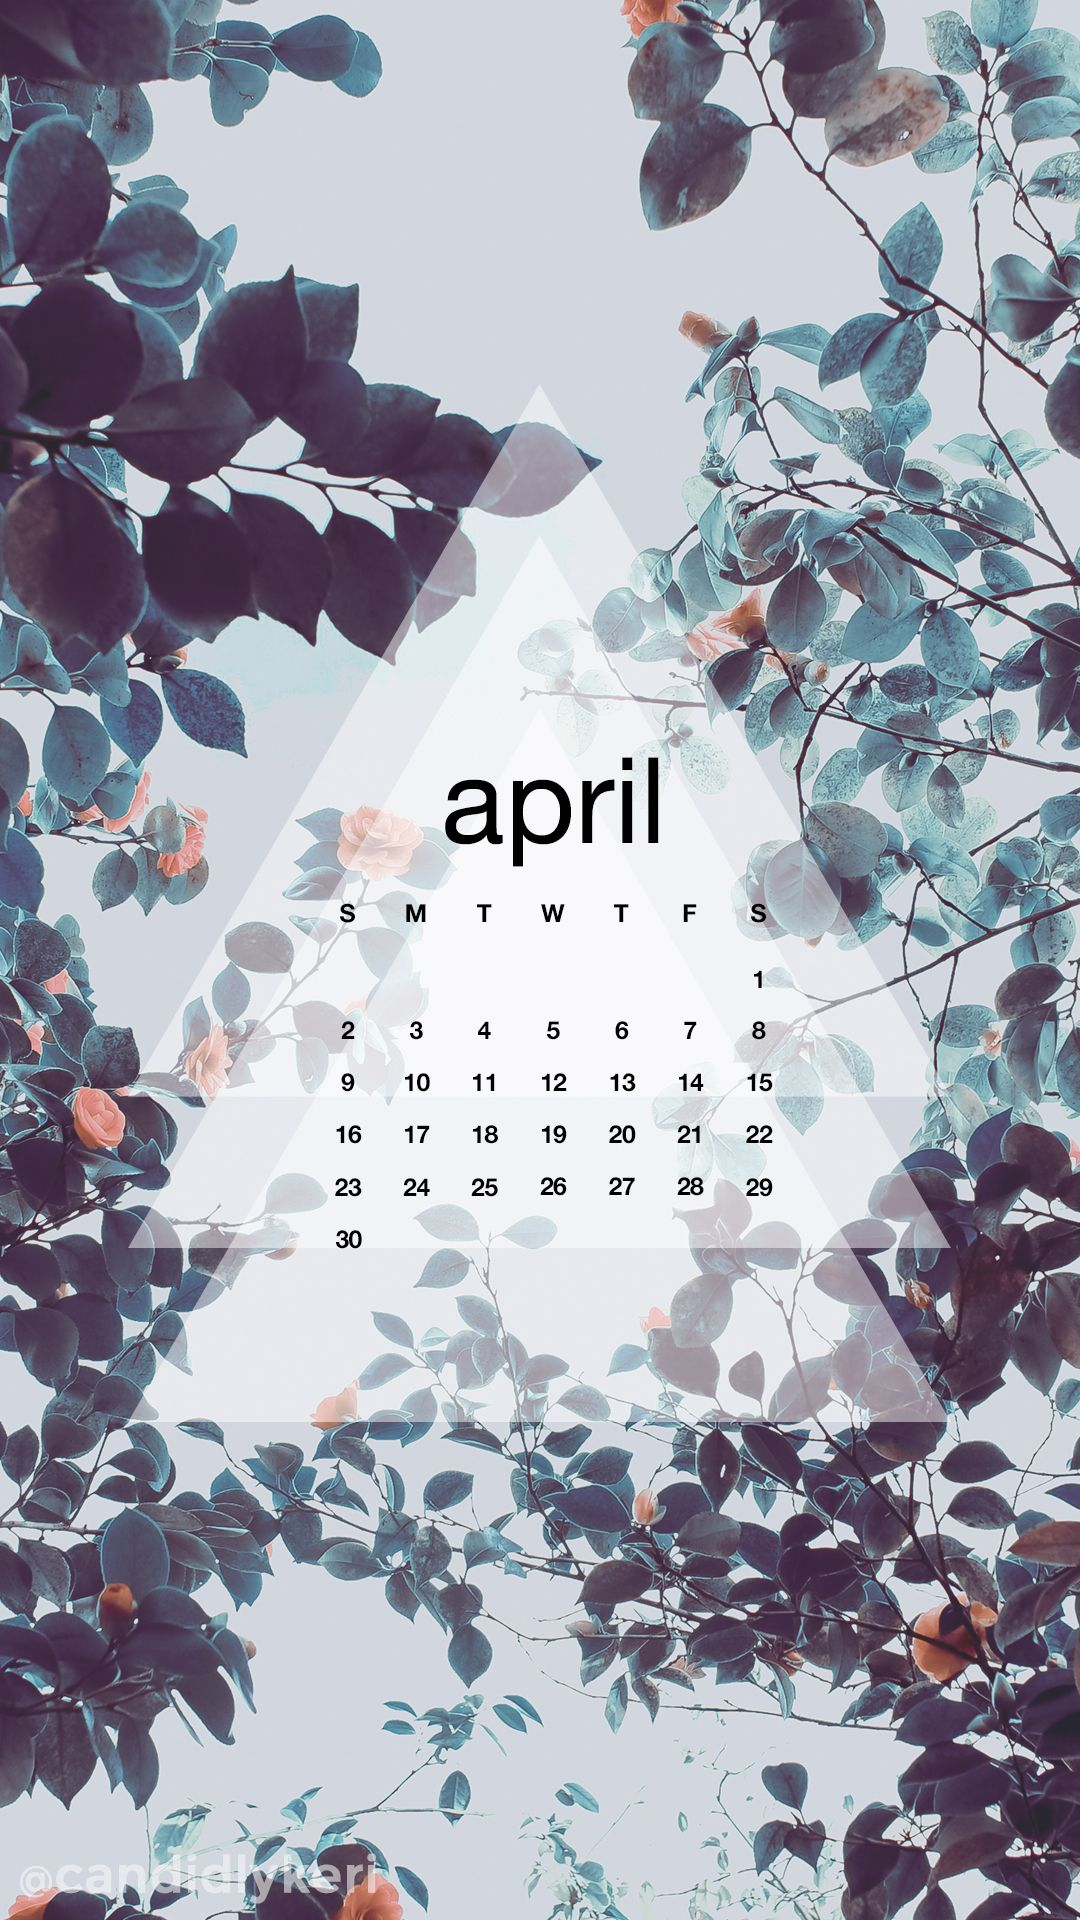 April Calendar 2017 Wallpaper You Can Download For Free On